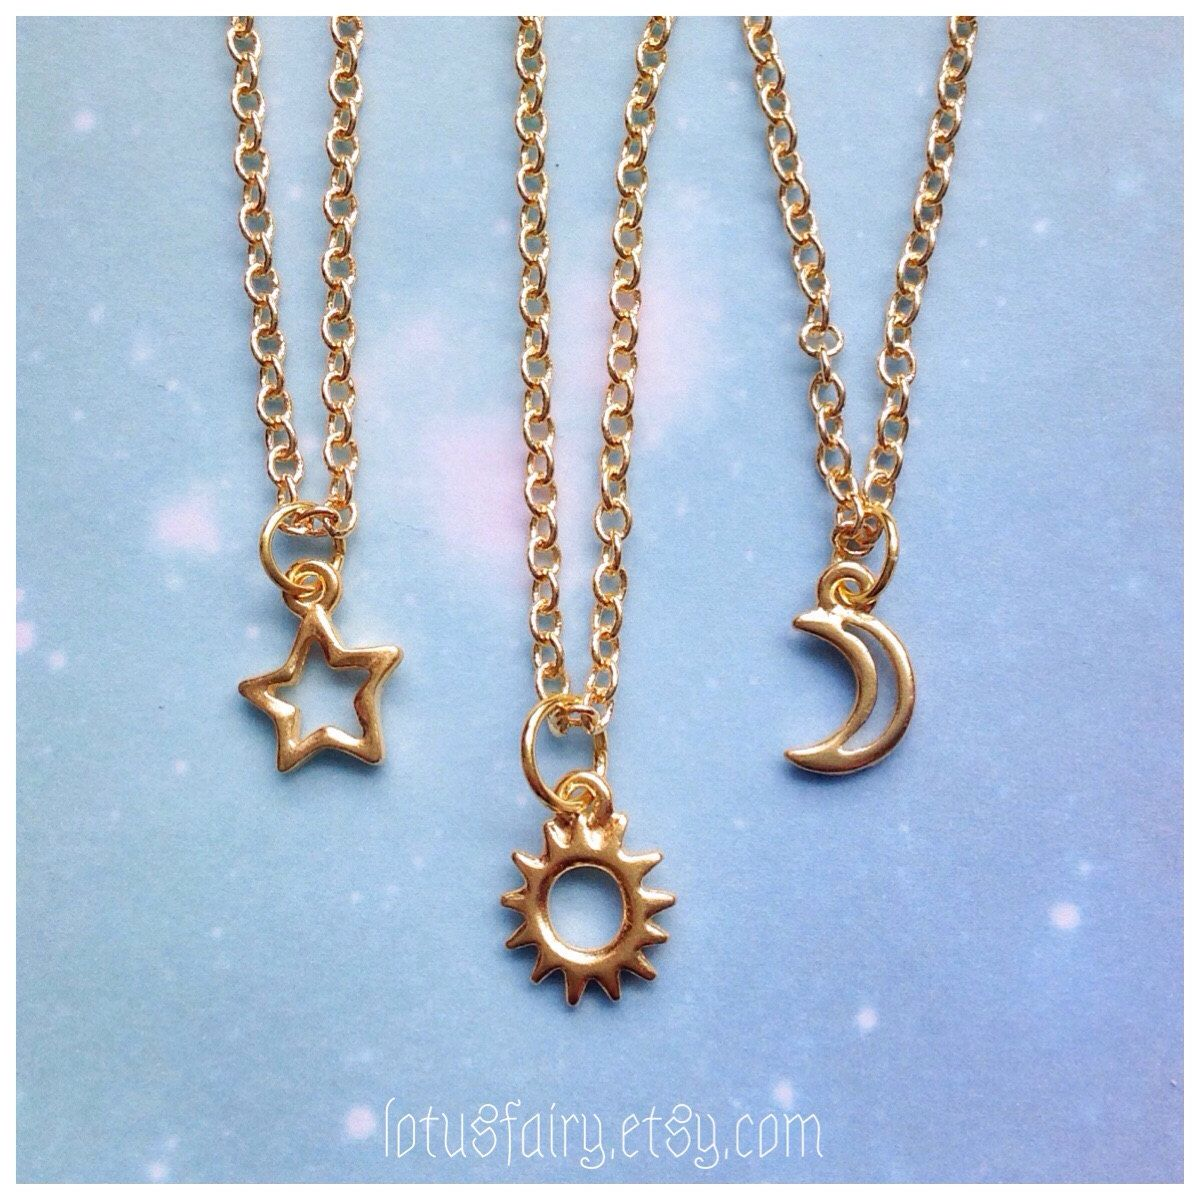 Moon or Star on dainty sterling and gold filled chains Silver and Gold Friendship necklaces your choice of Sun Set of Two